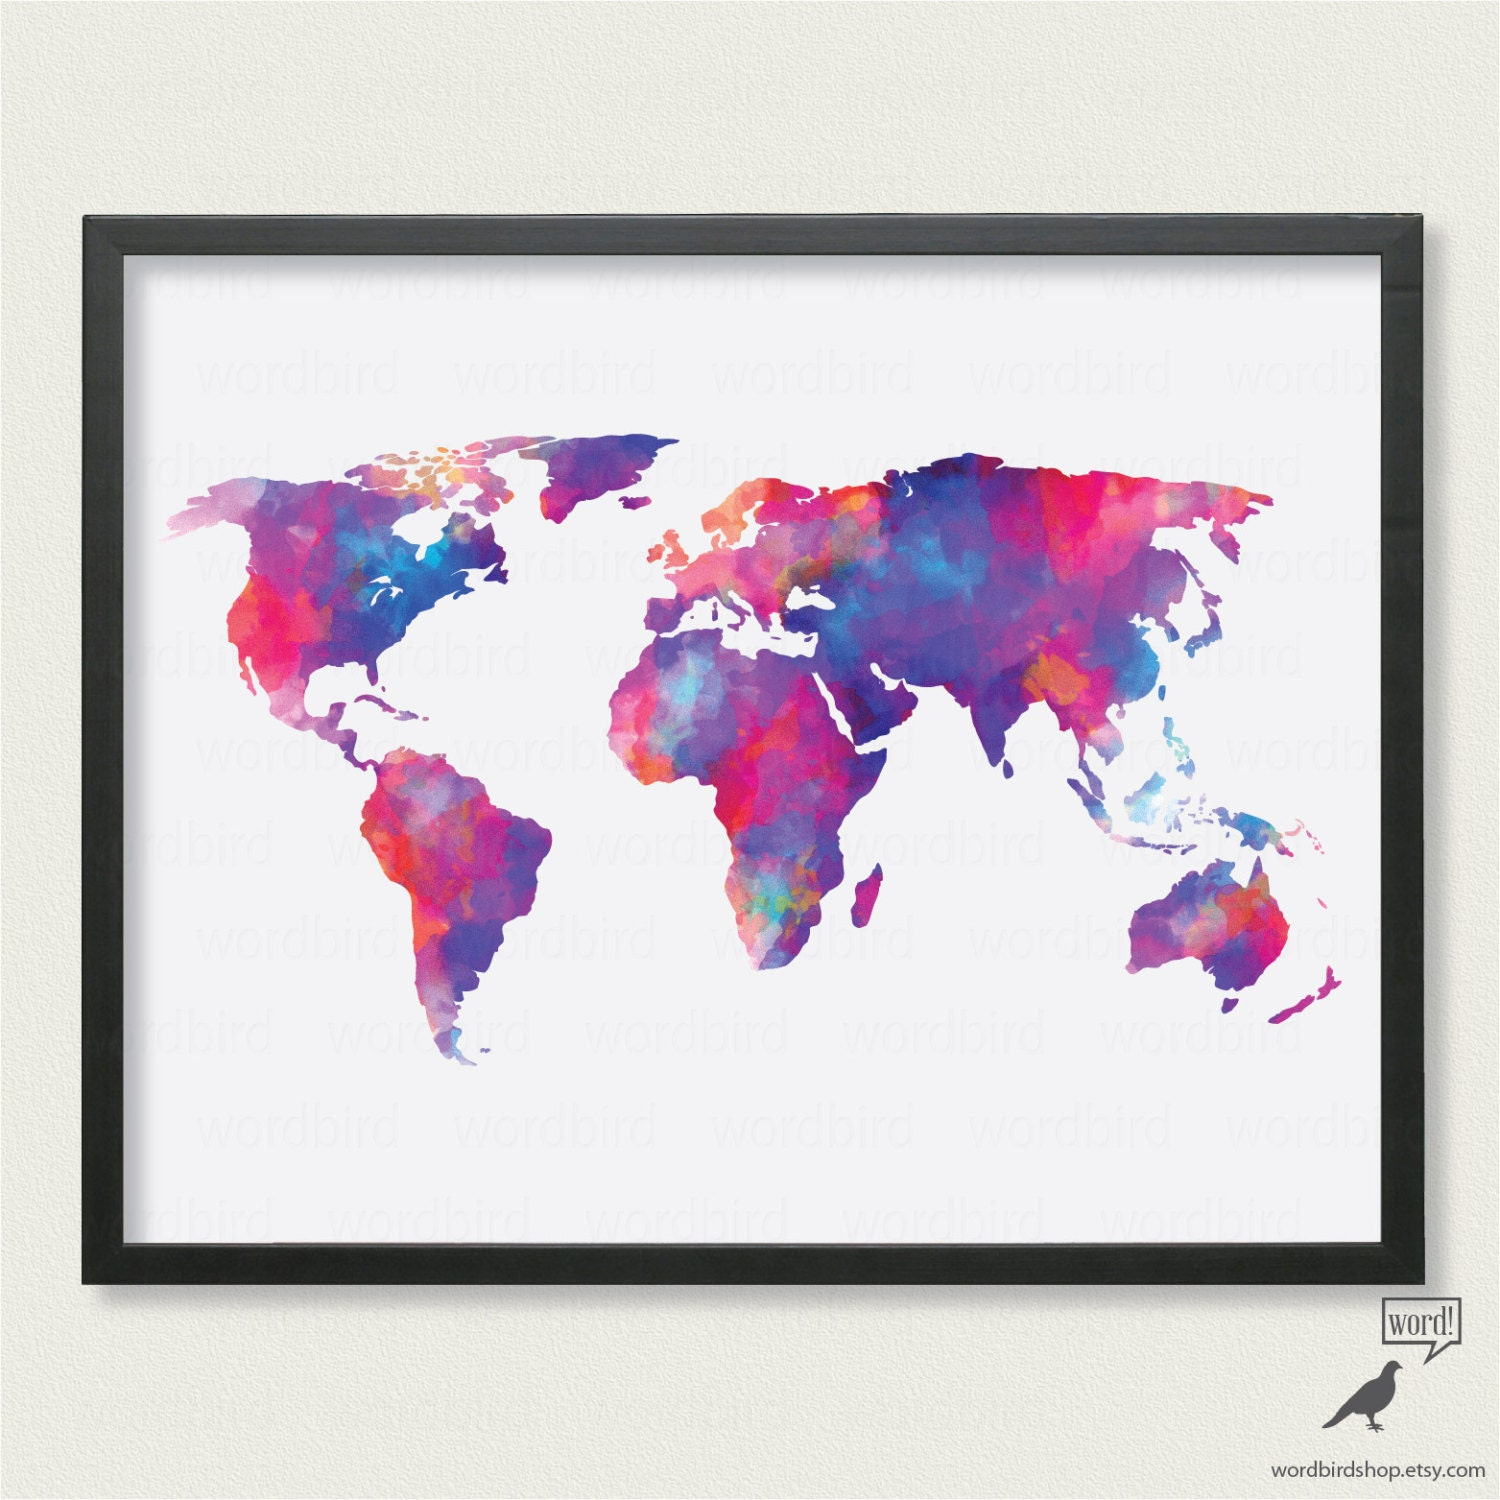 Watercolor world map up to 24x36 digital watercolor painting zoom gumiabroncs Choice Image